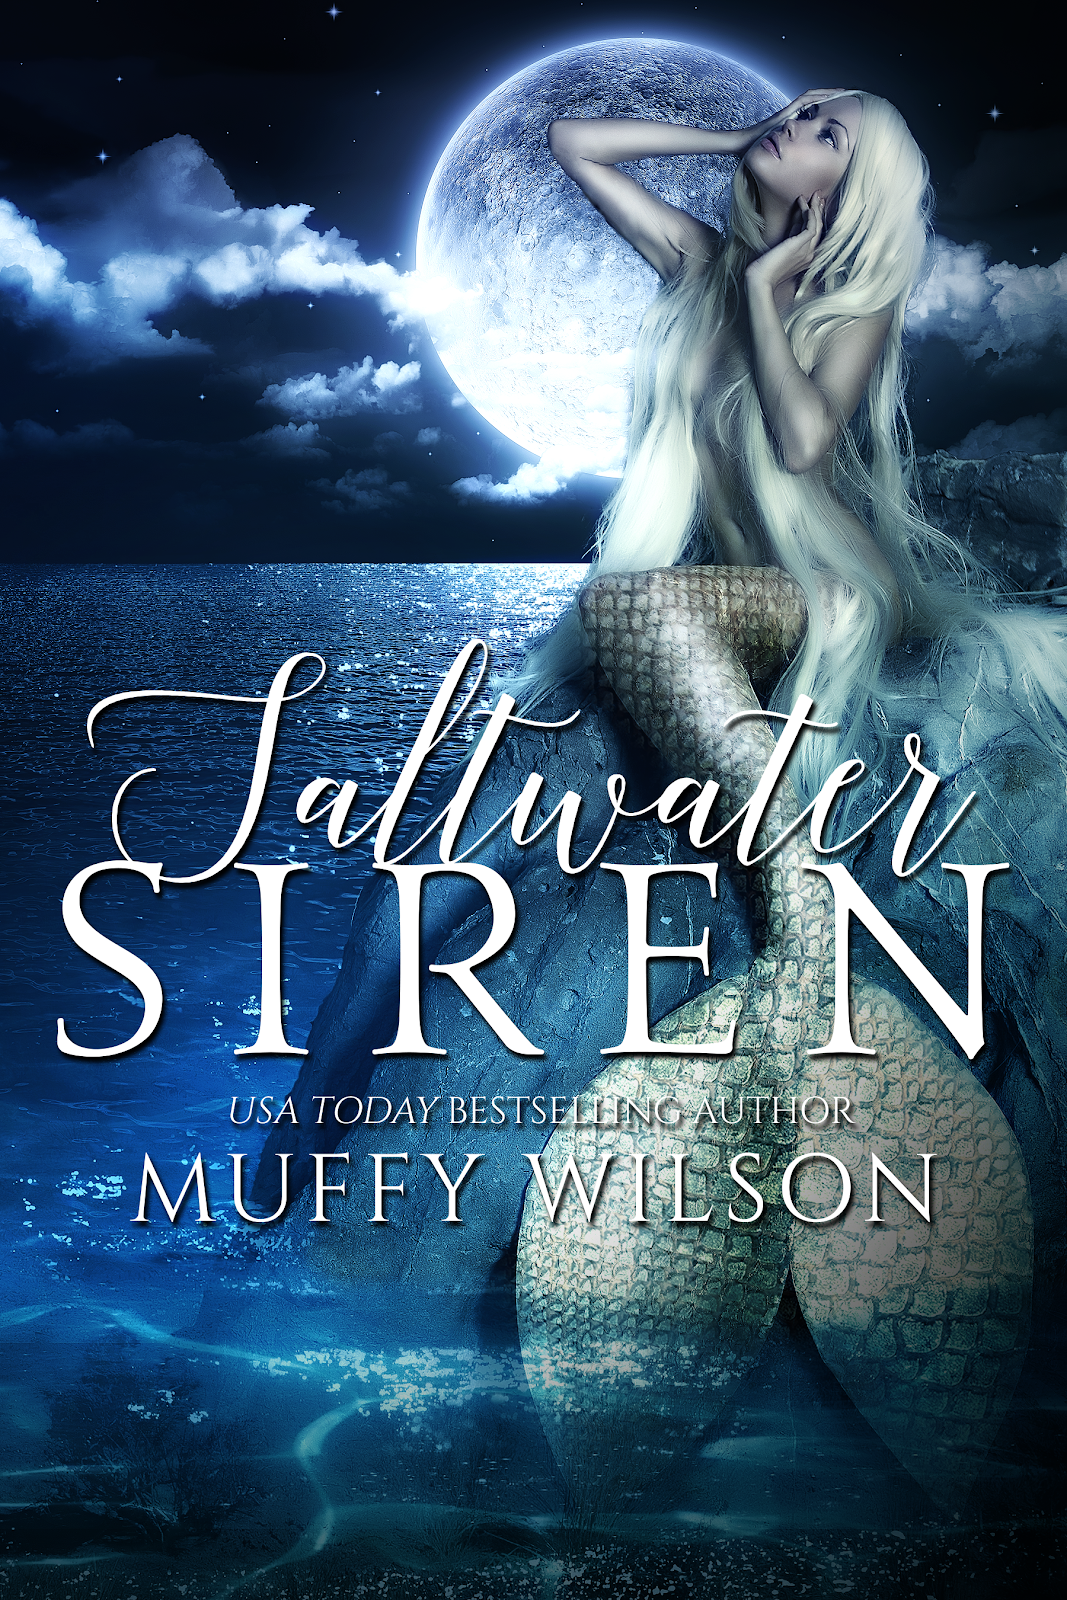 Saltwater Siren: Fairytales with a Twist